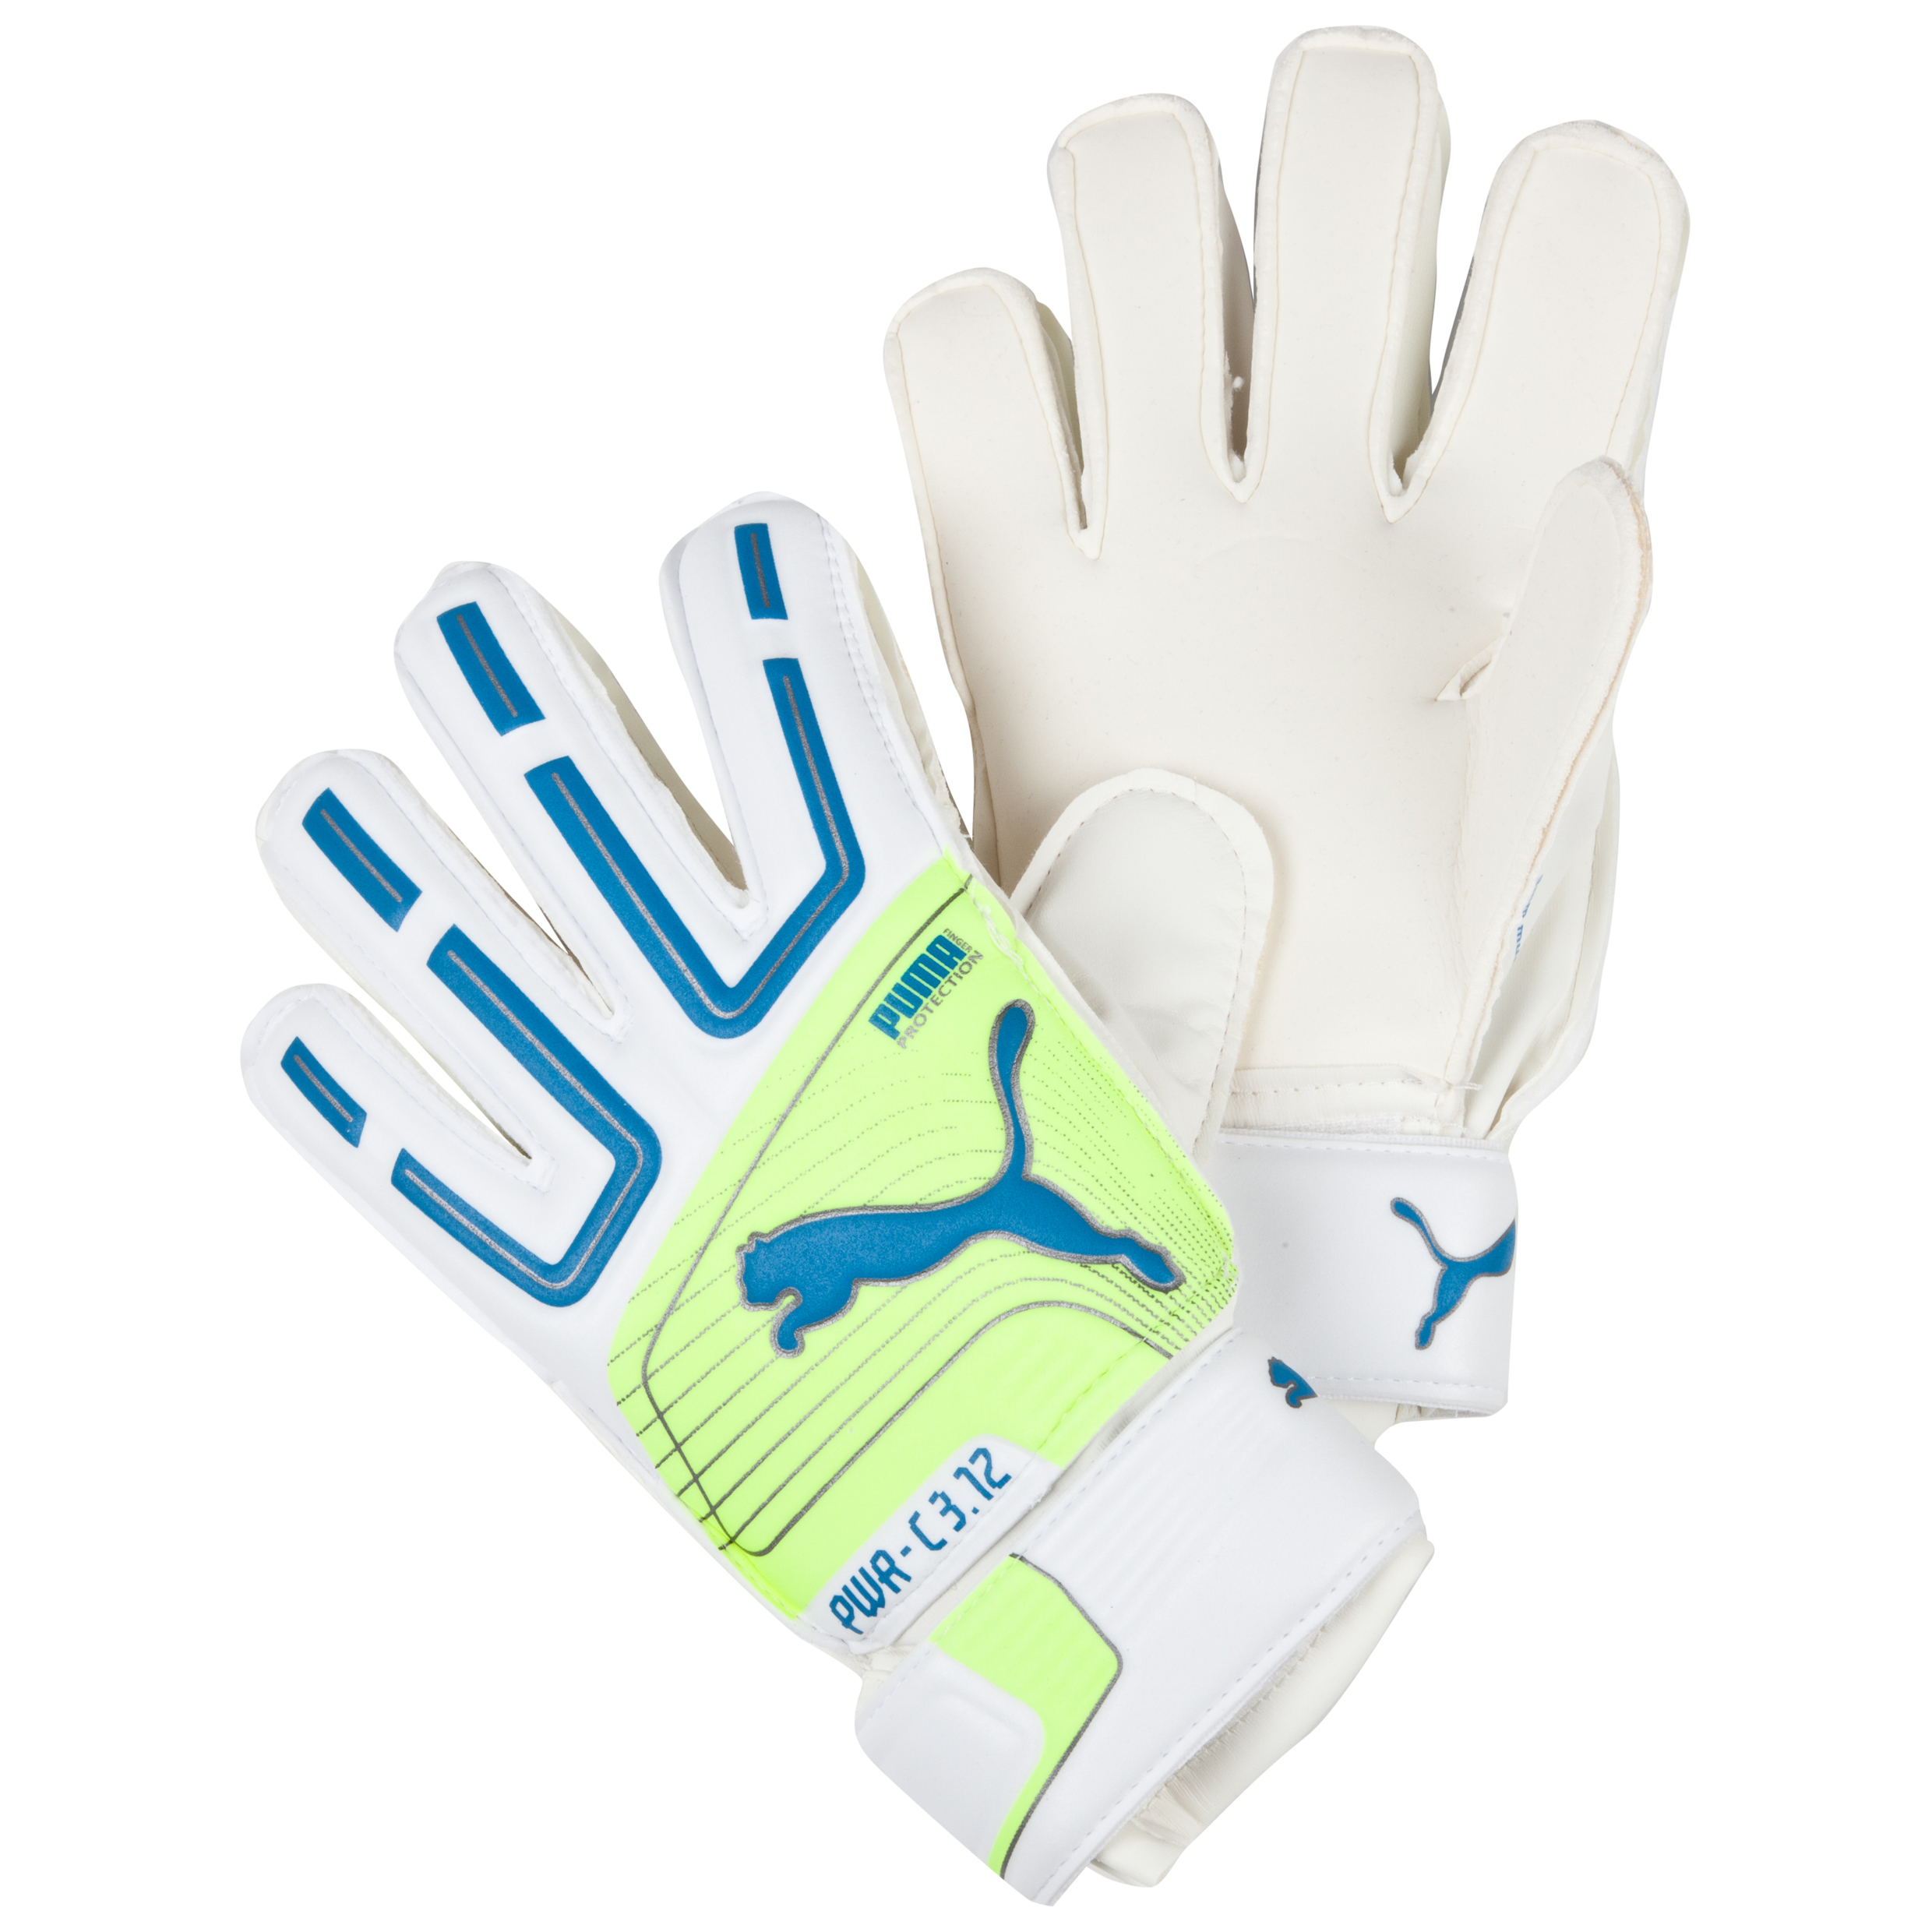 Puma PowerCat 3.12 Protect Goalkeeper Gloves White